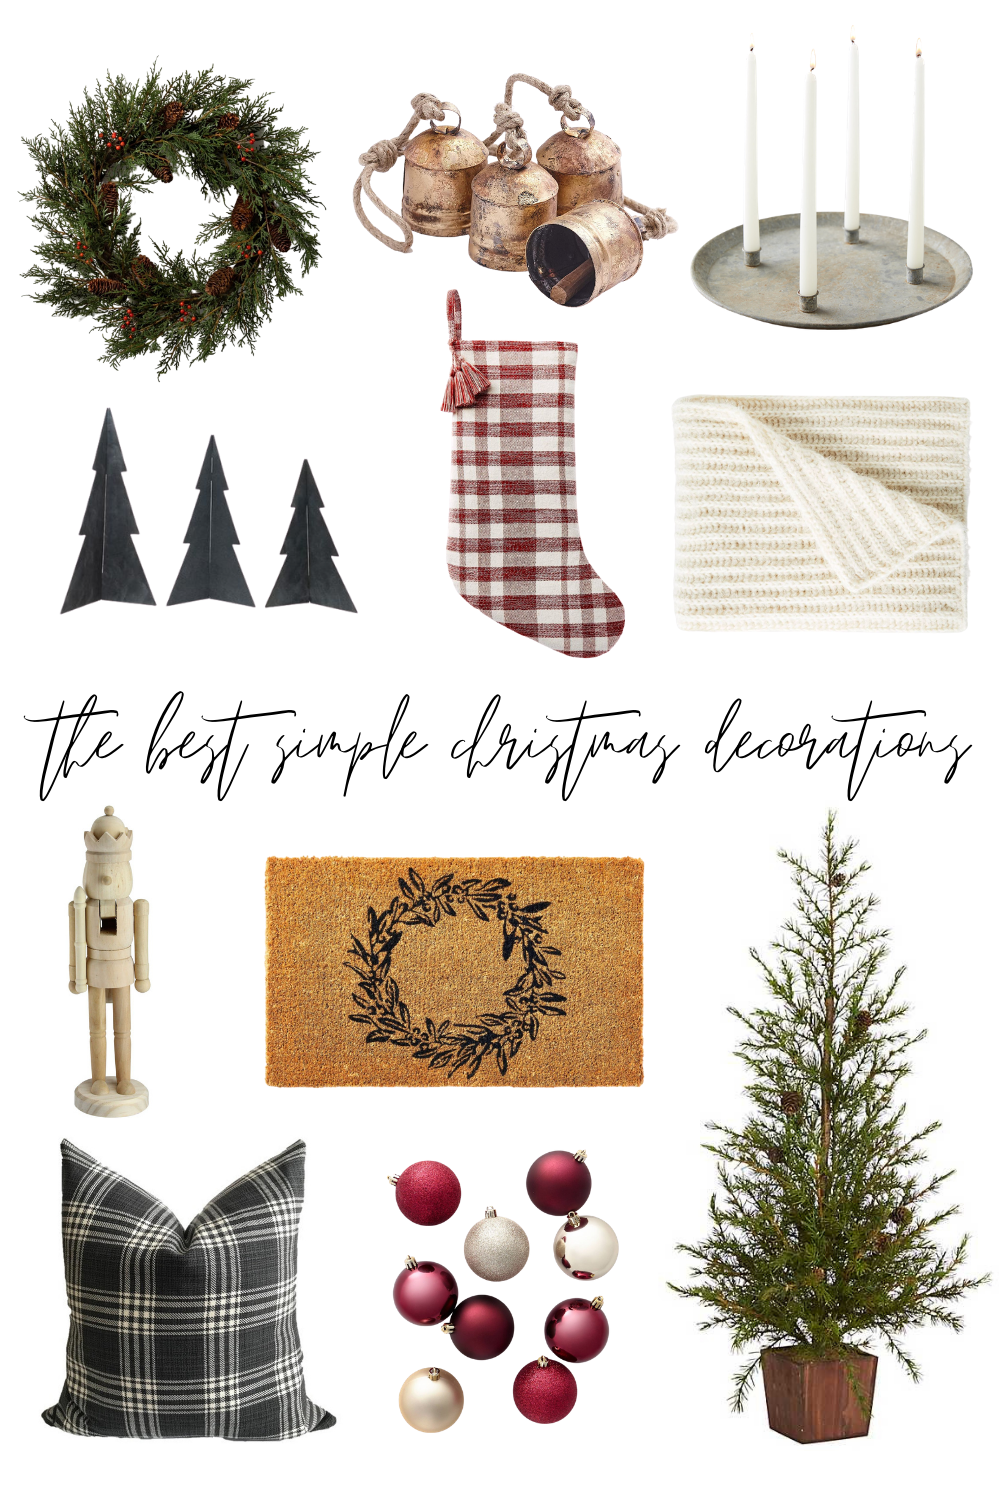 The Best Simple Christmas Decorations